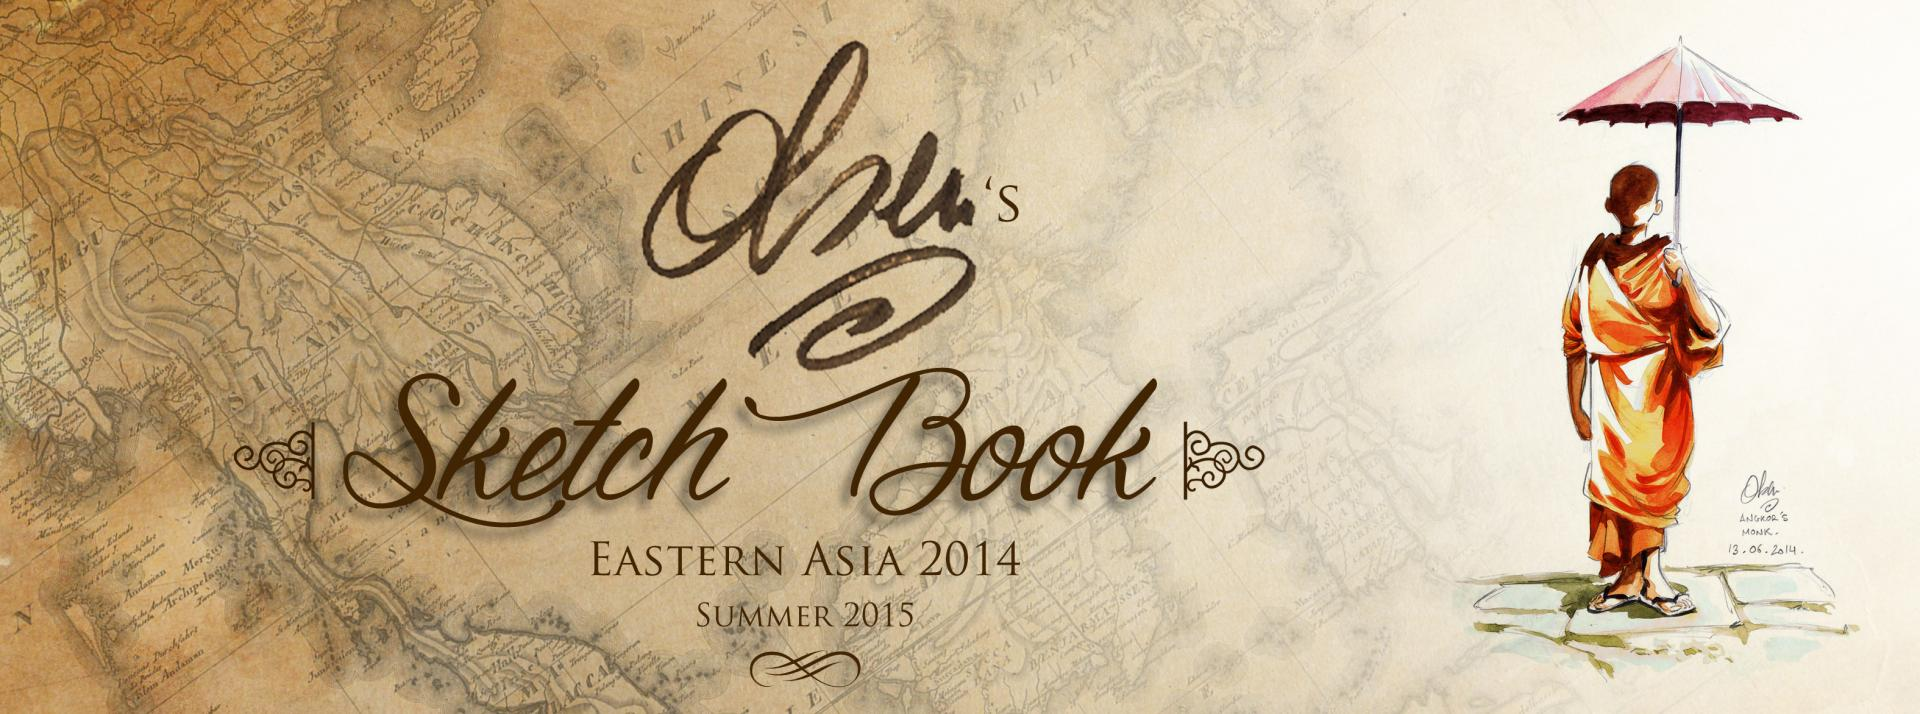 Sketch Book - Eastern Asia - 2014